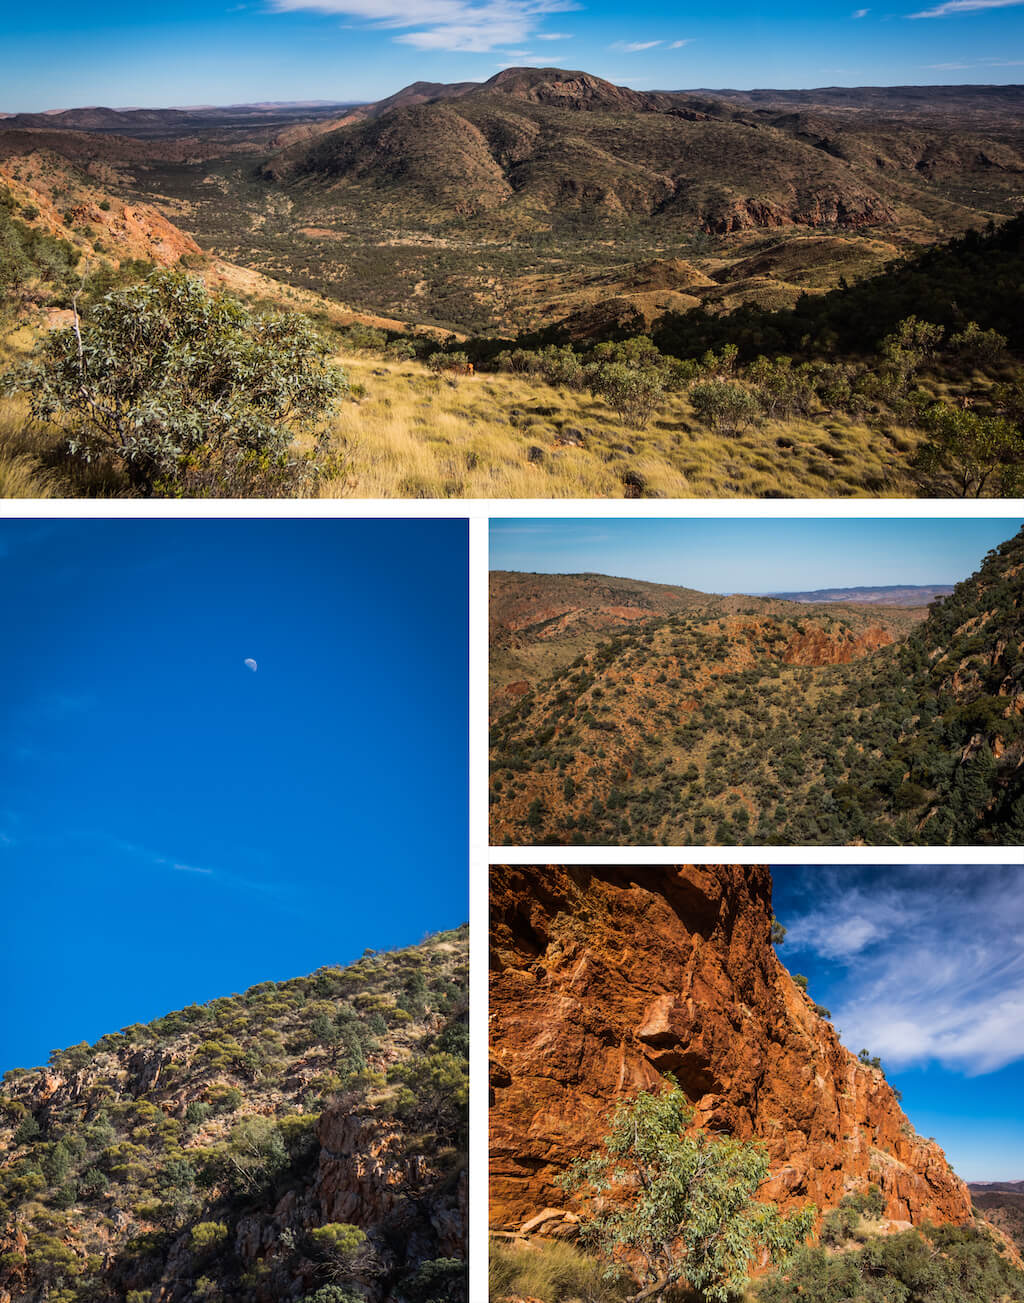 Coming down from Brinkly Bluff - Beautiful photography taken while trekking the Larapinta Trail in Central Australia